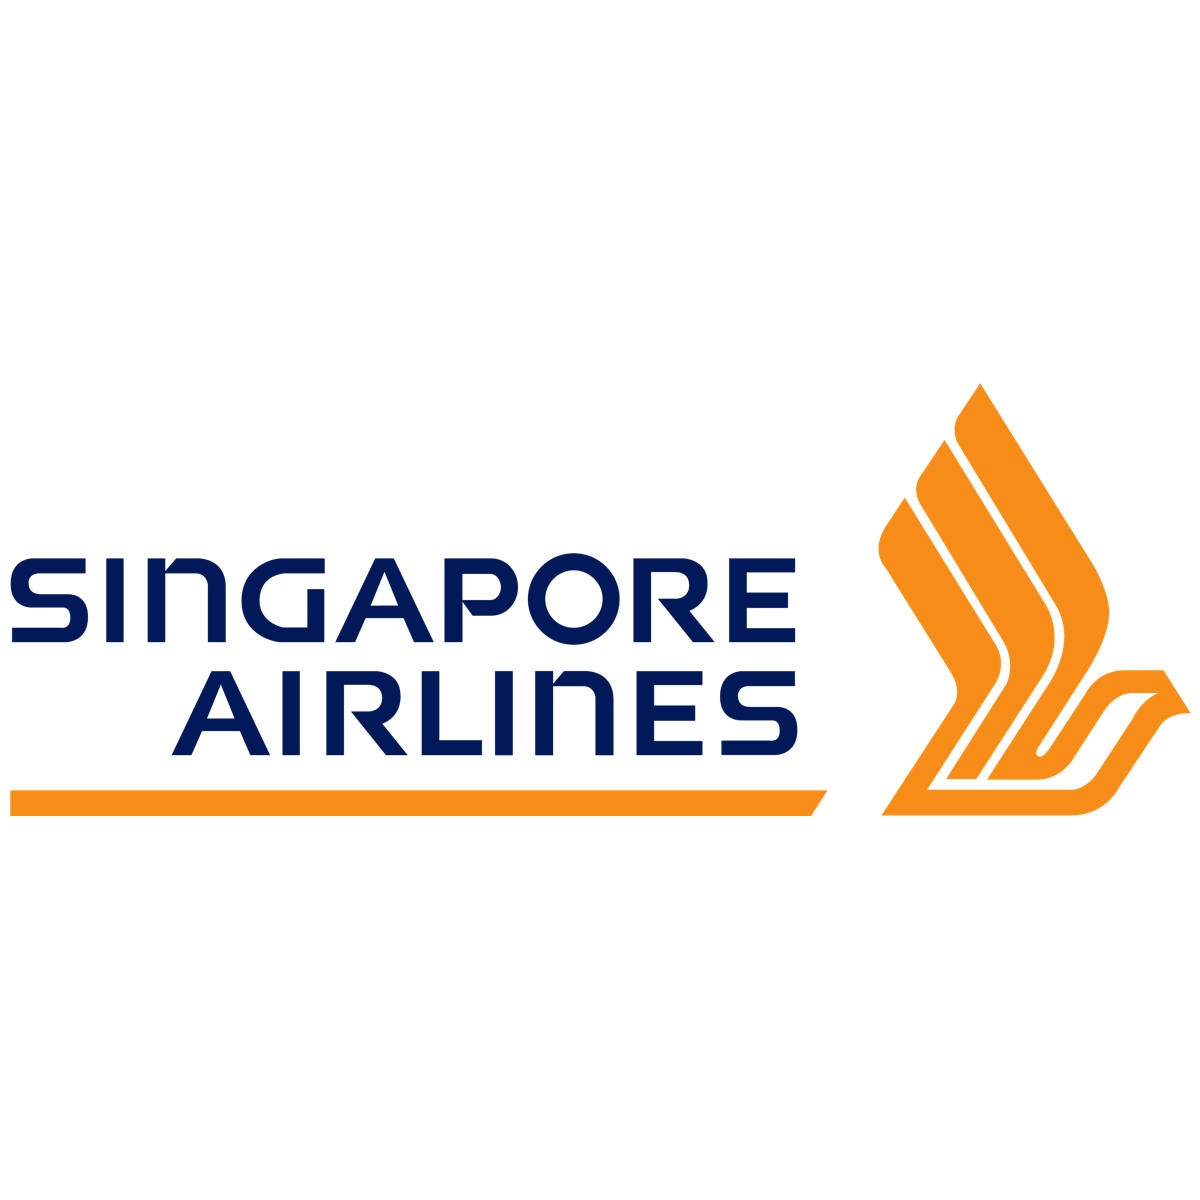 Singapore Airlines (SIA) - UOB Kay Hian Research 2018-07-18: 1qfy19 Results Preview ~ Core Earnings To Rise 11% Yoy Despite A 42% Yoy Rise In Fuel Prices